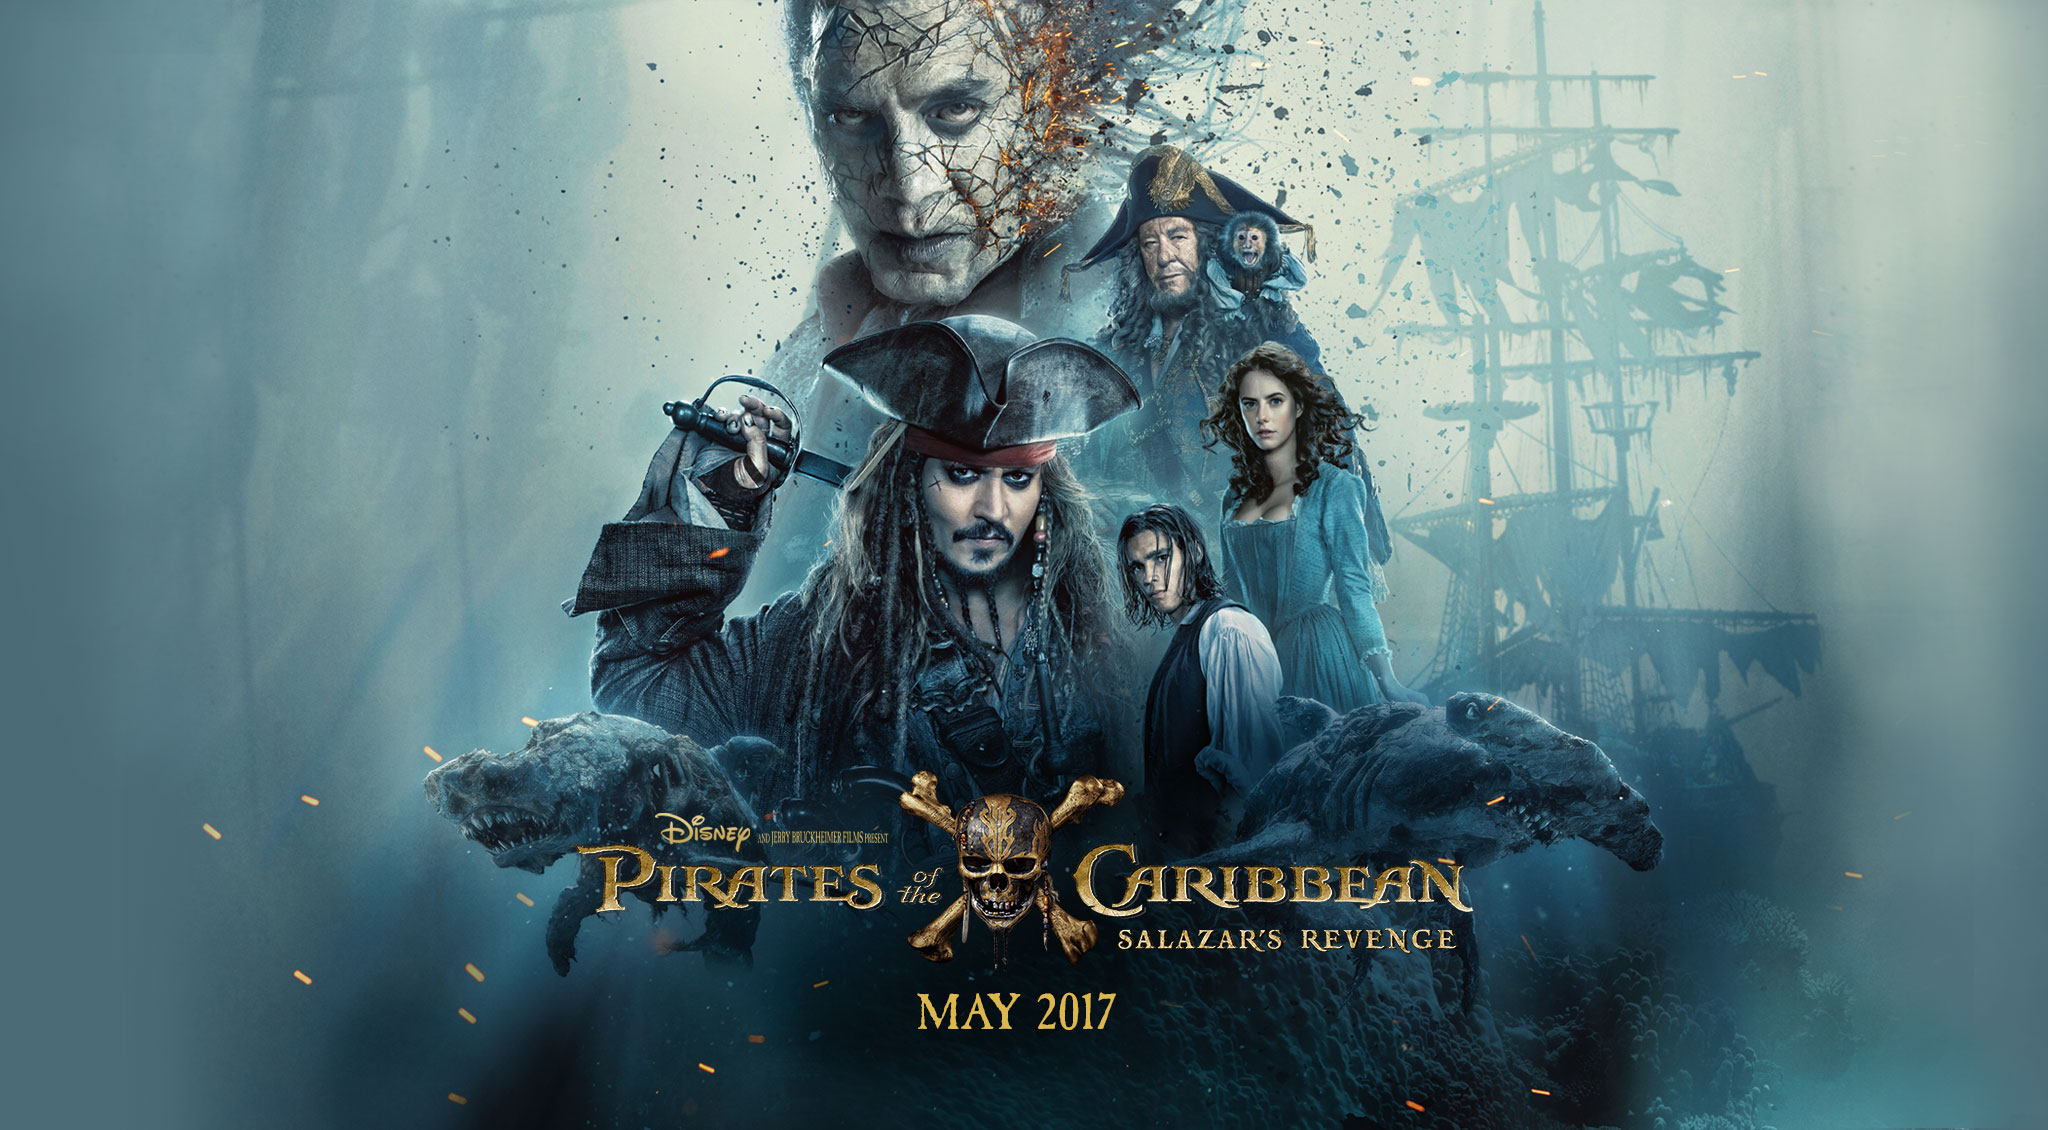 image - pirates of the caribbean salazar's revenge wallpaper